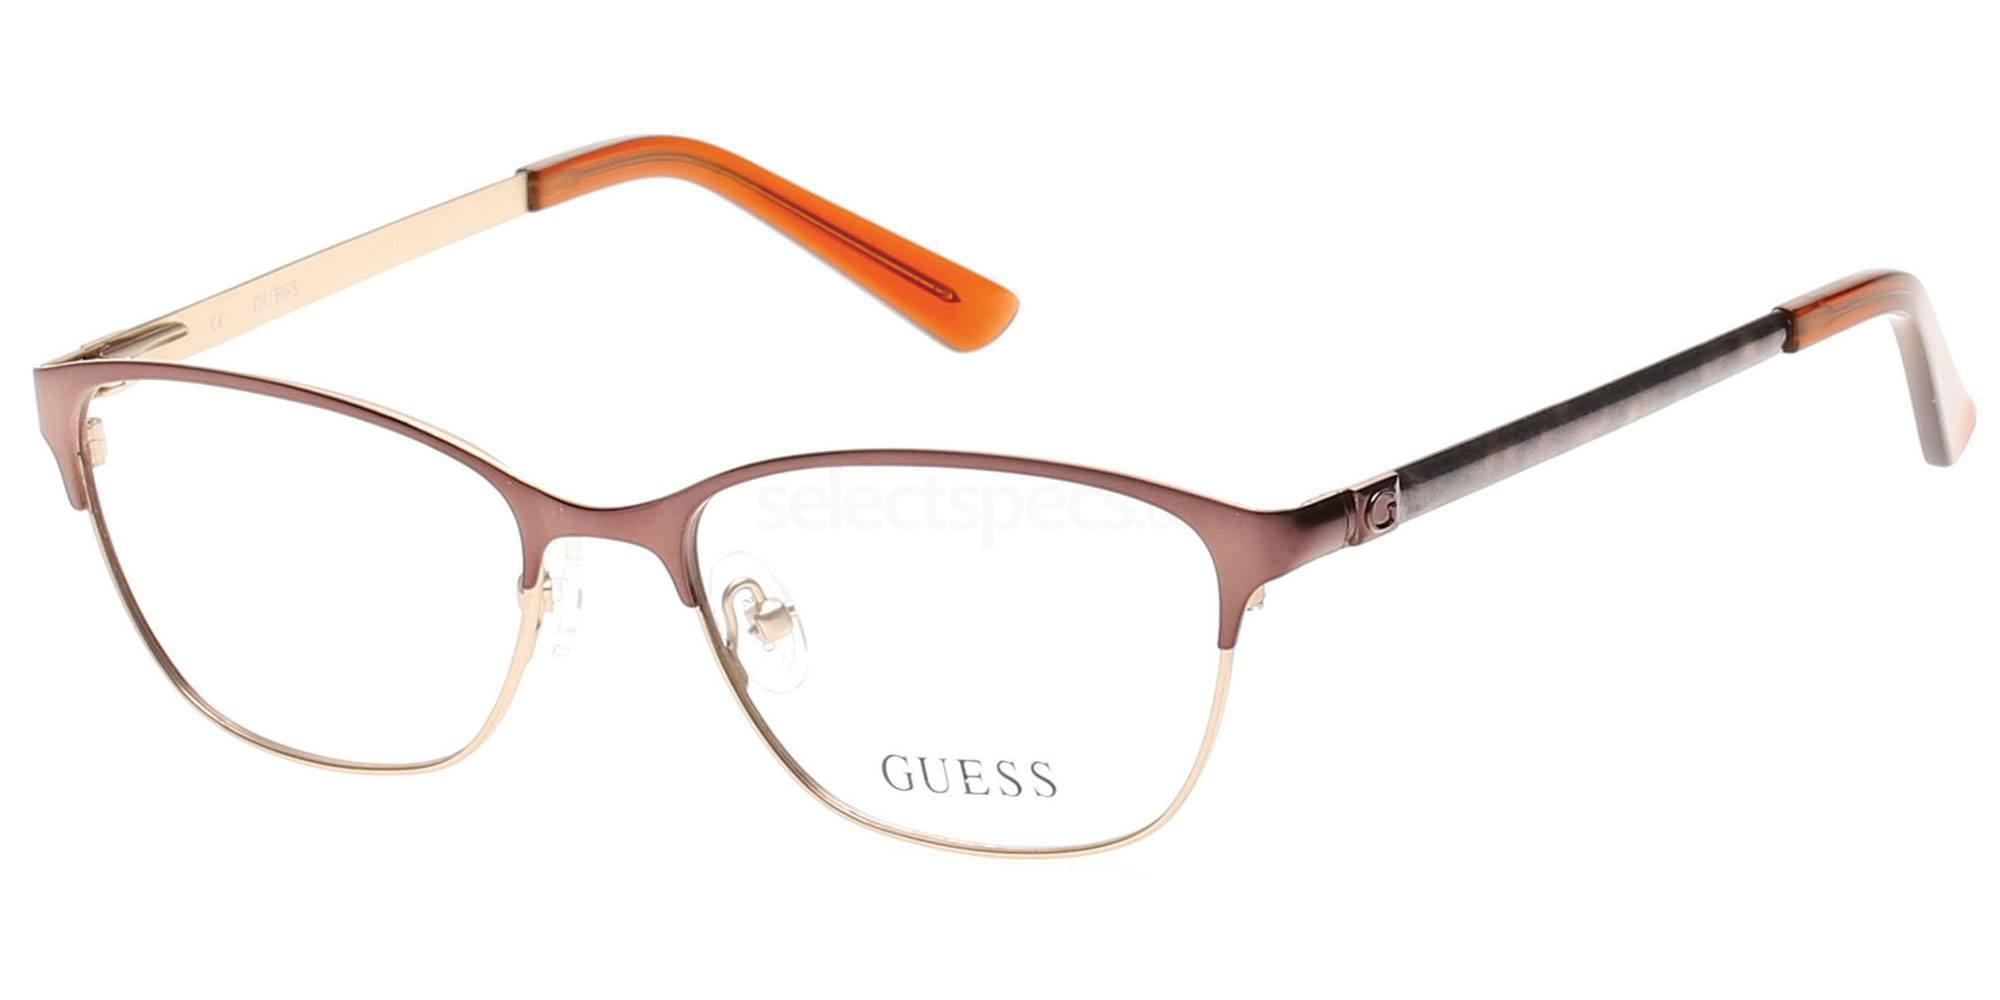 046 GU2499 Glasses, Guess